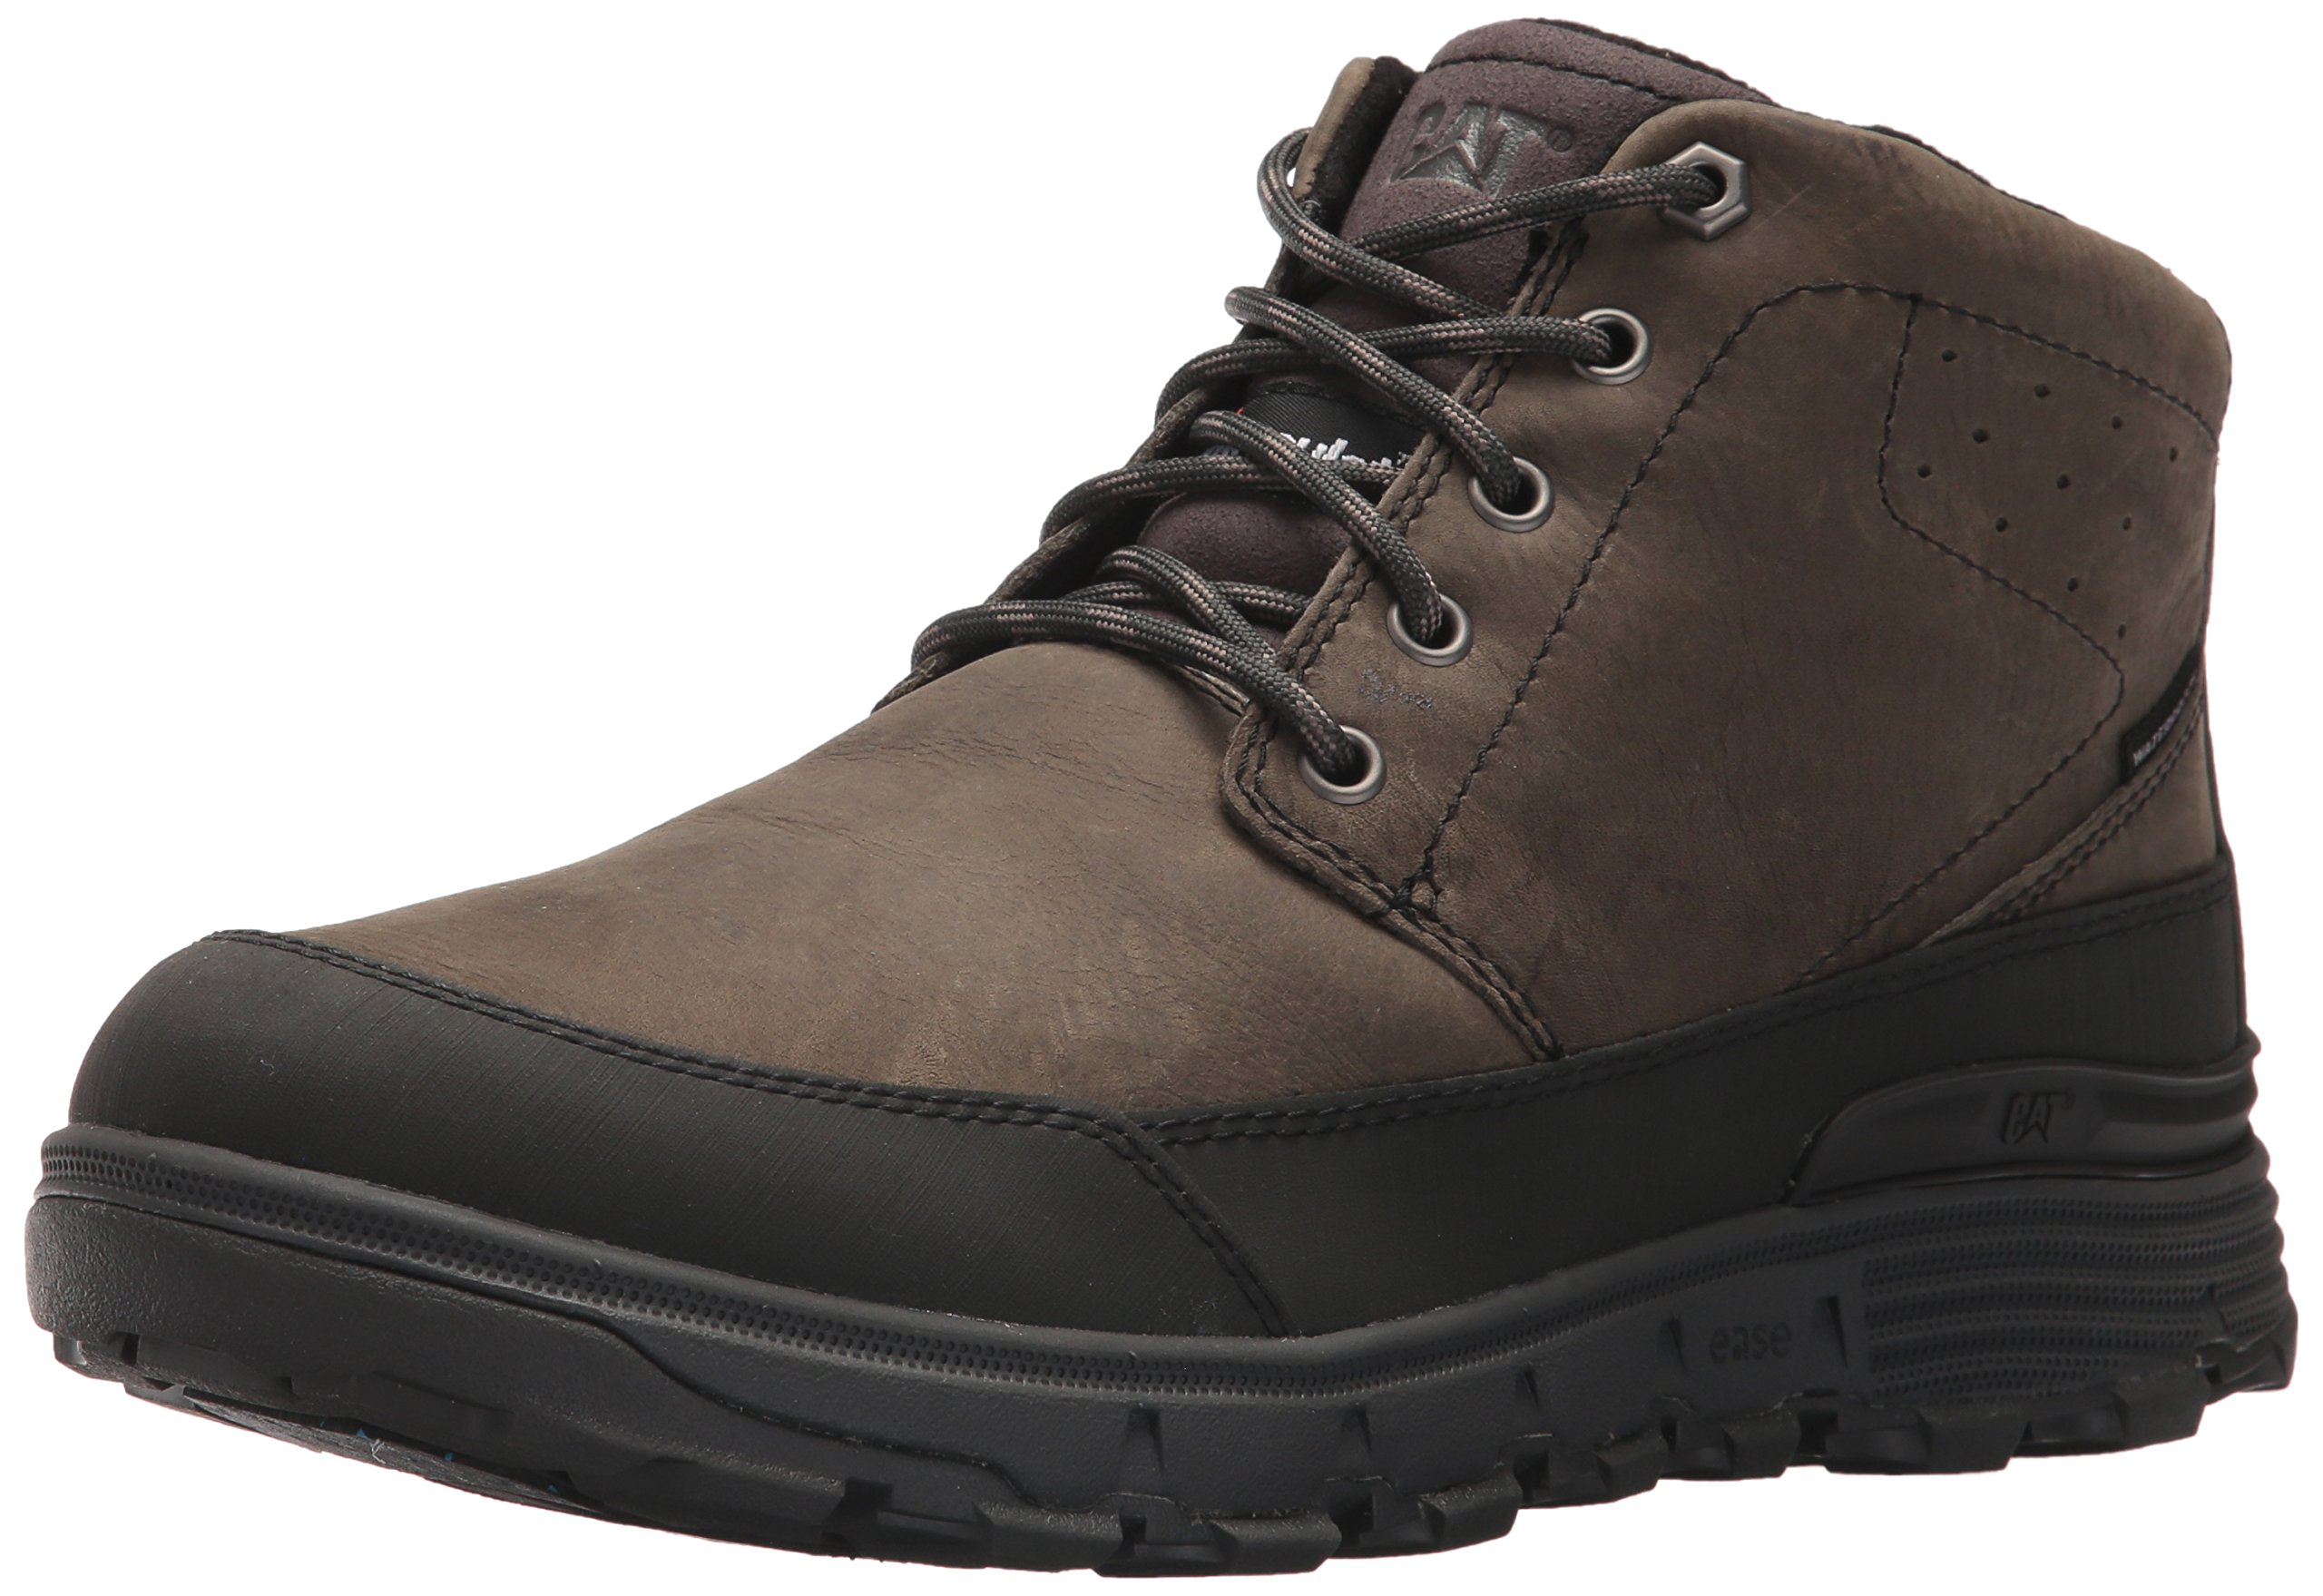 Caterpillar Men's Drover Ice+ Waterproof TX Winter Boot, Dark Gull Grey, 11.5 D US